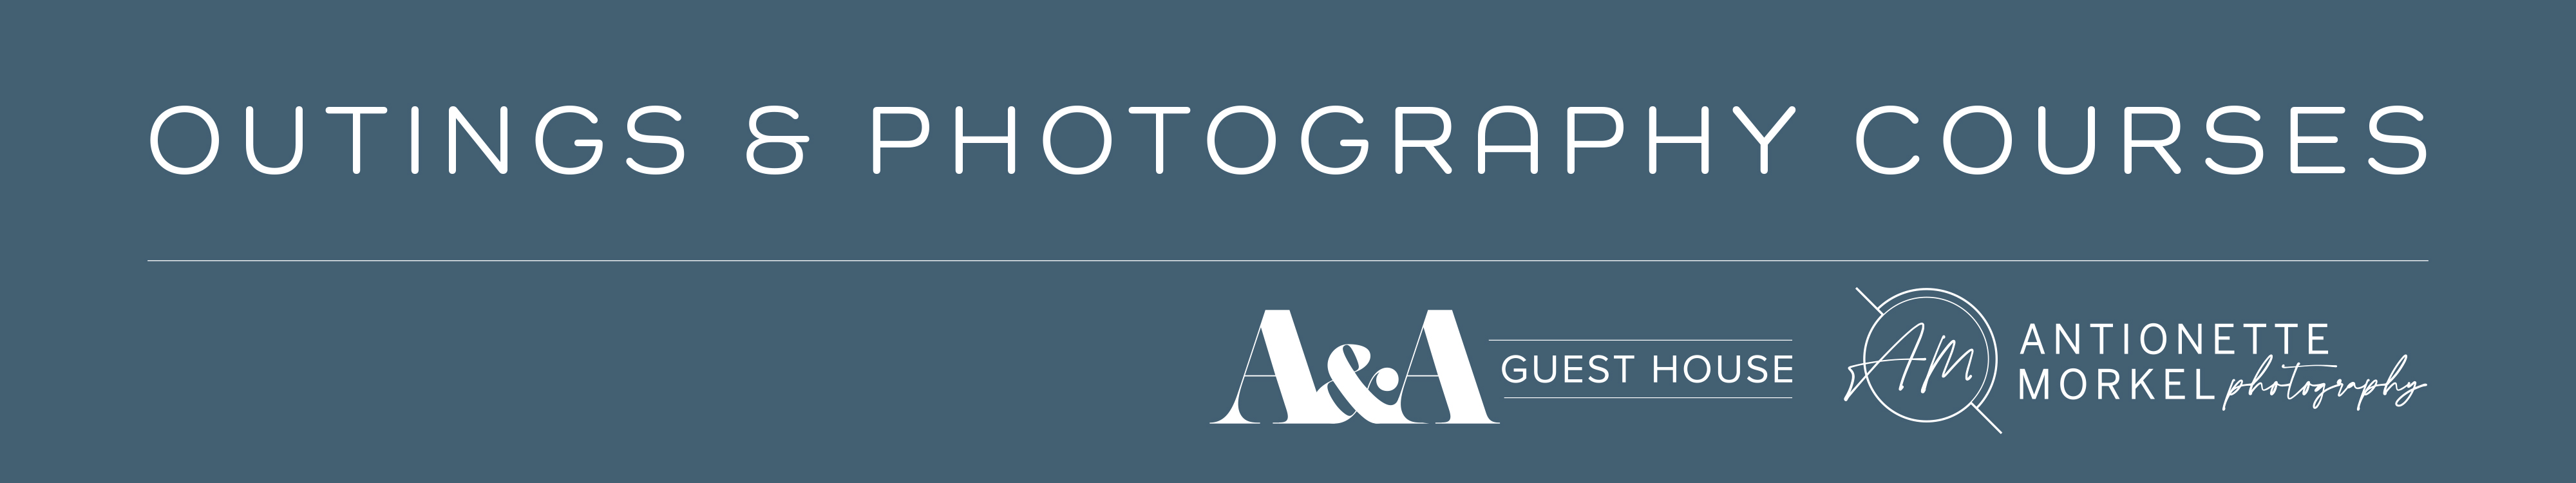 Photography Workshops at A&A Guesthouse